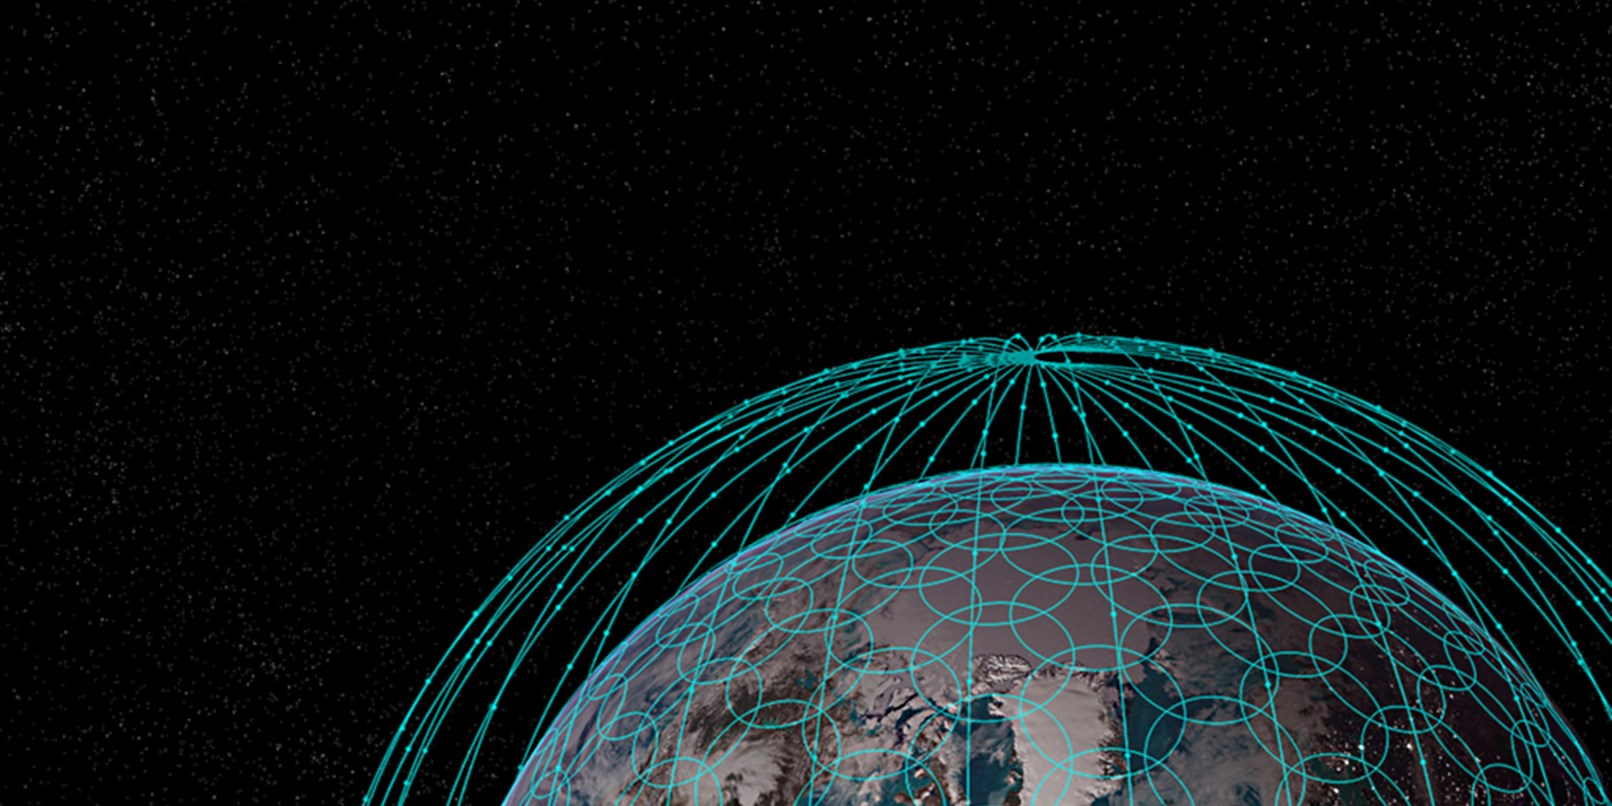 OneWeb strikes a $500 million deal to provide internet globally via satellite